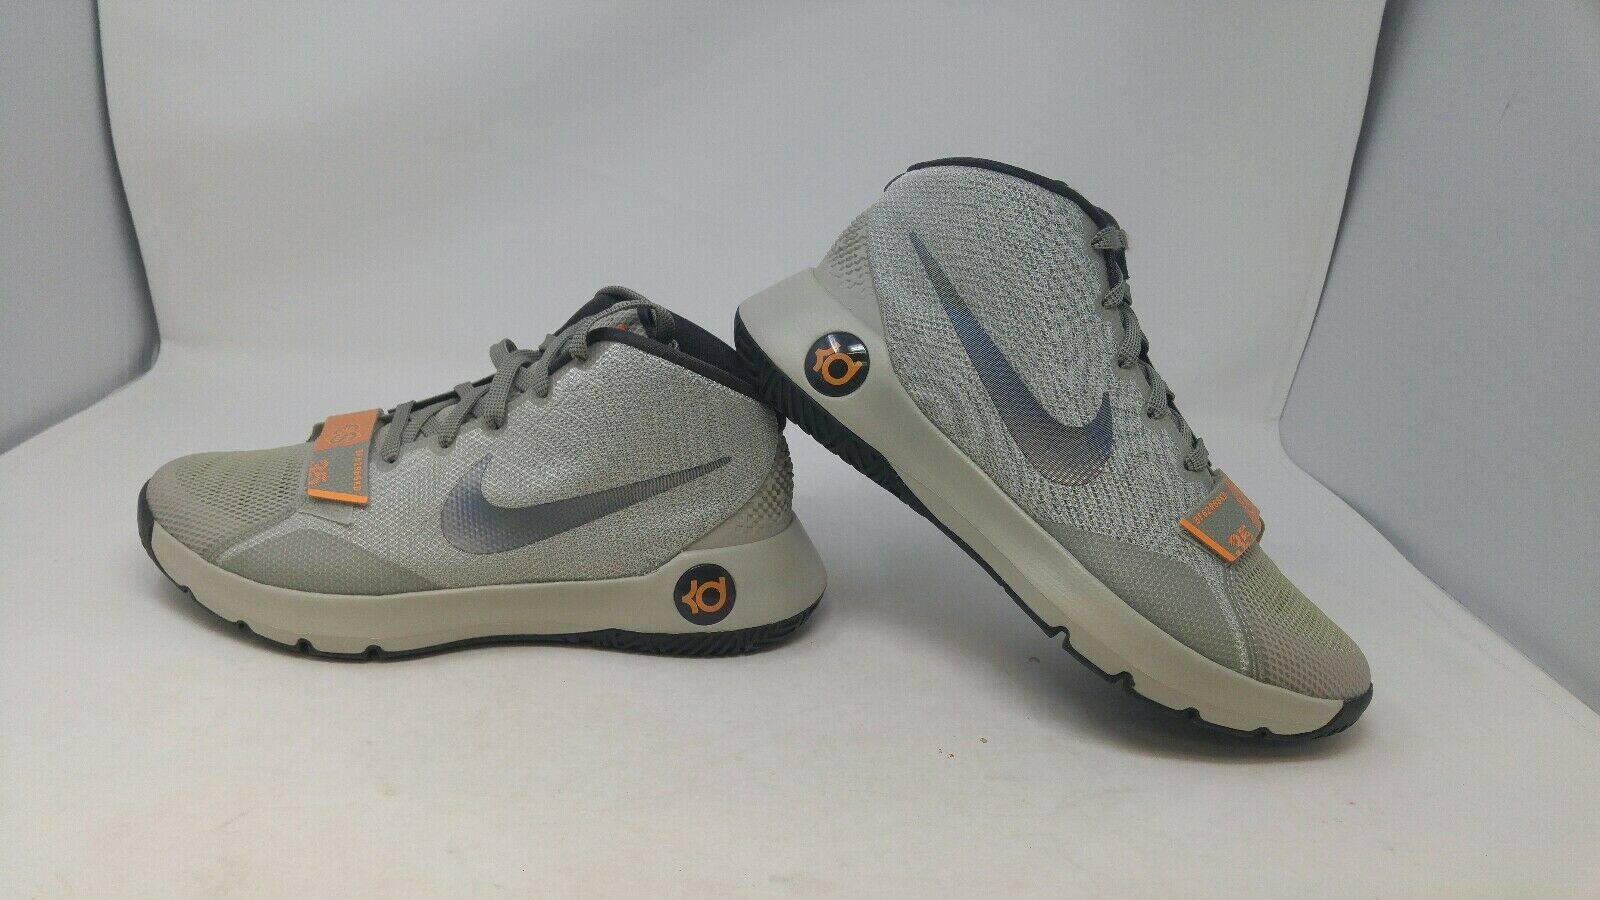 NIKE KD Trey 5 III Men's Basketball shoes -- Lunar Grey -- Size  9.5